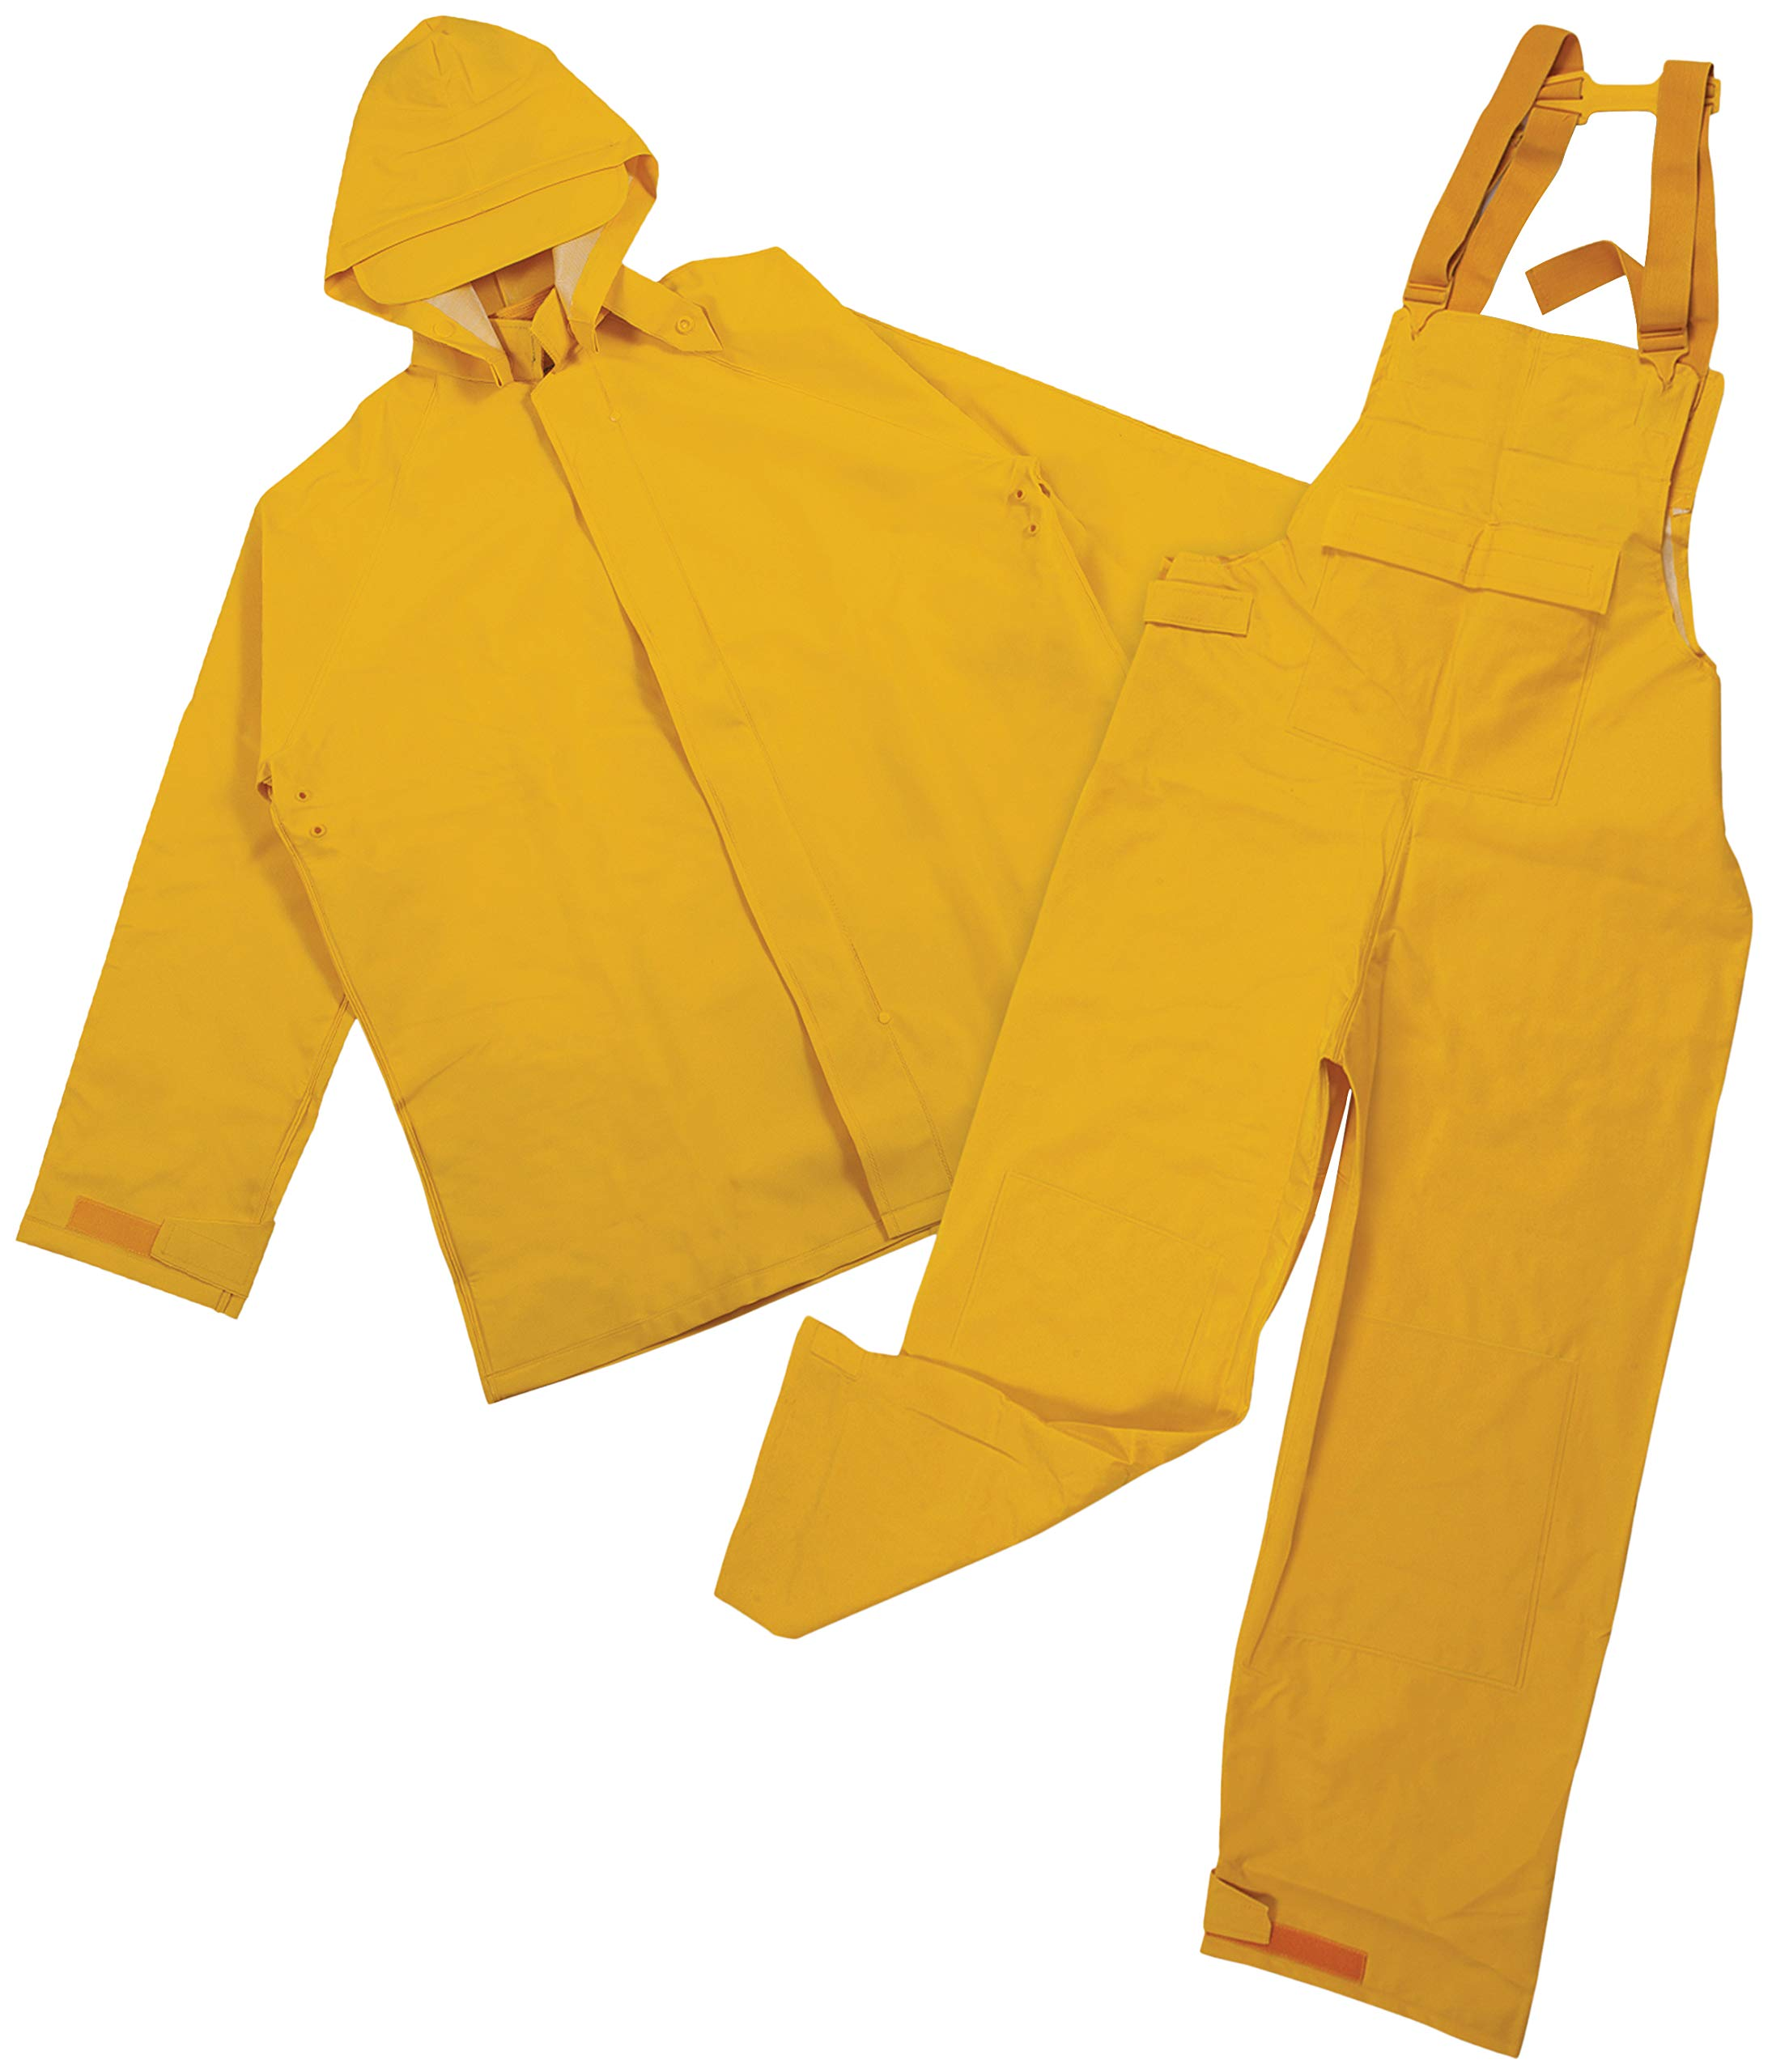 Stansport Commercial Rainsuit Yellow Large